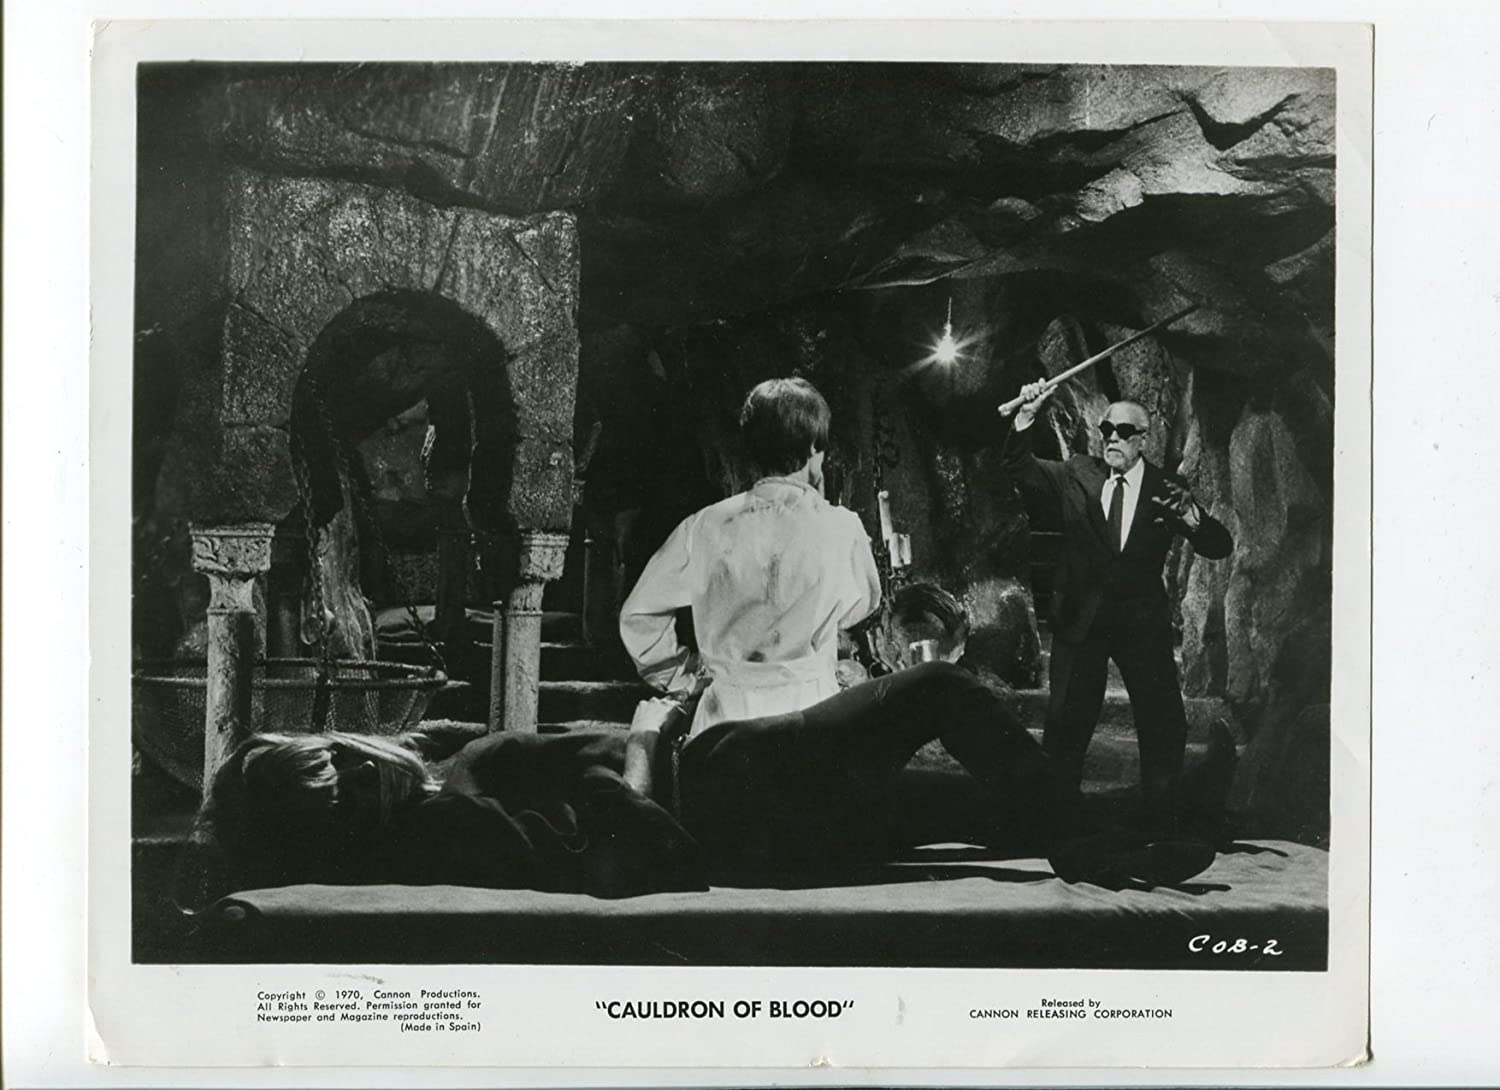 MOVIE PHOTO: Cauldron Spring new work one after another Al sold out. Of Blood-Jean-Pierre Aumont-BW-Still